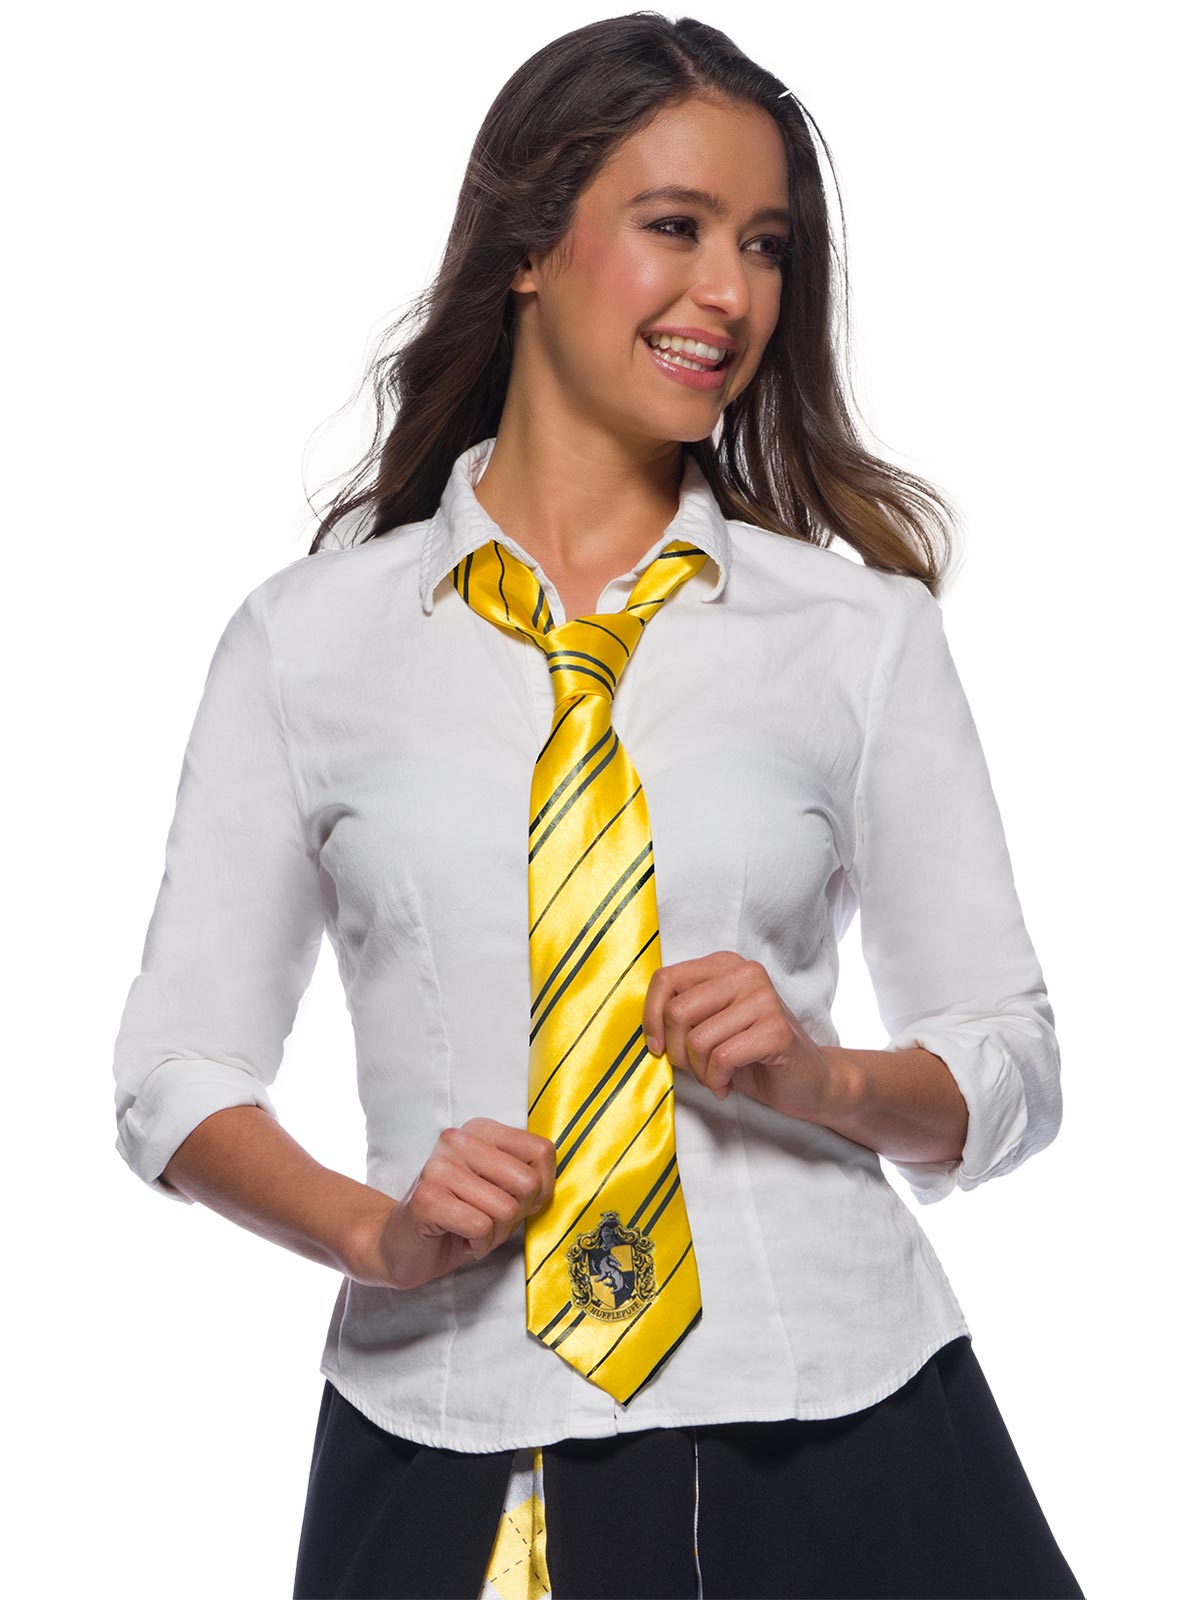 Harry Potter Hufflepuff House Tie - Buy Online Only